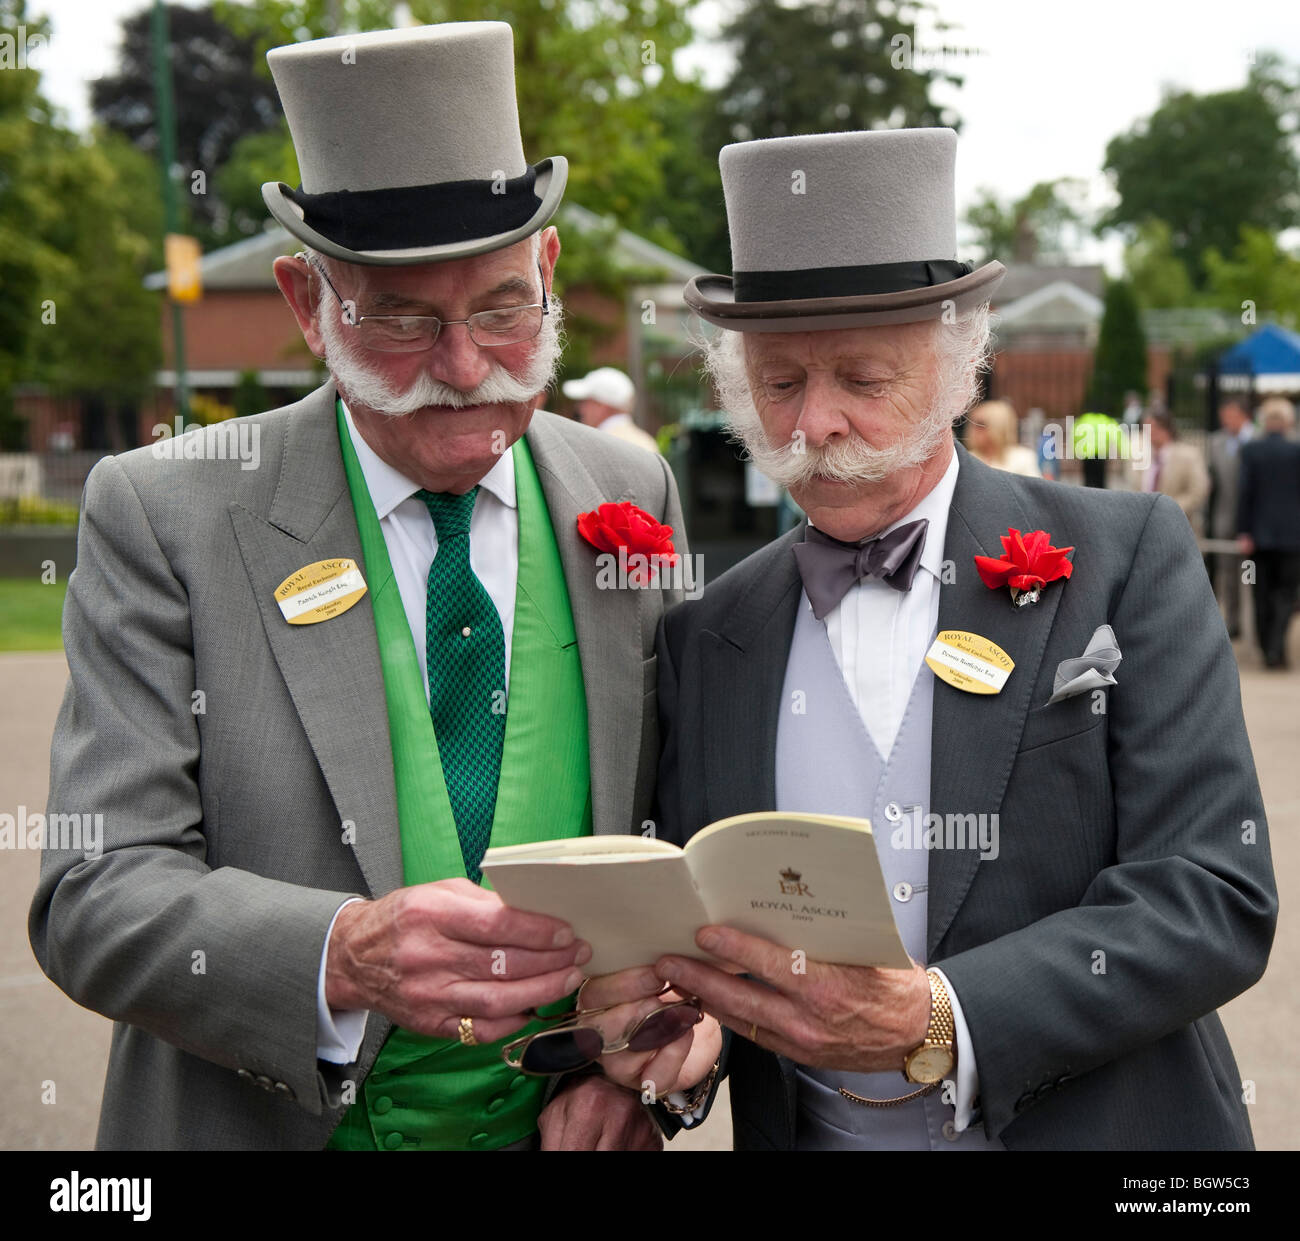 Two gentlemen reading the race program at Royal Ascot - Stock Image